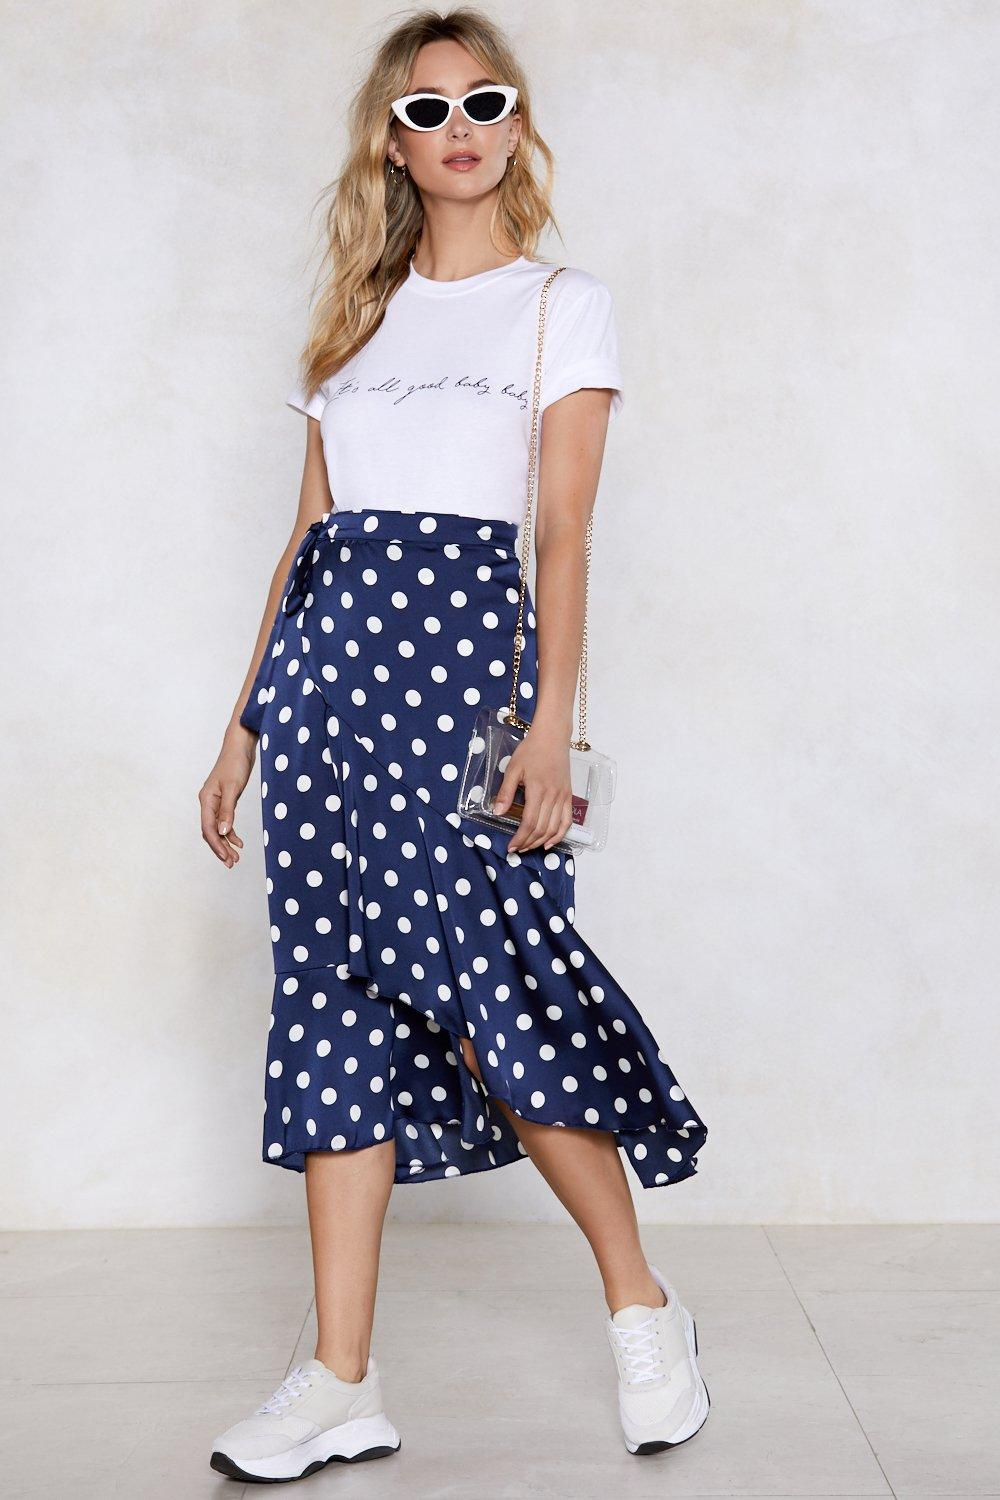 2019 year for girls- Skirt dot polka with bow